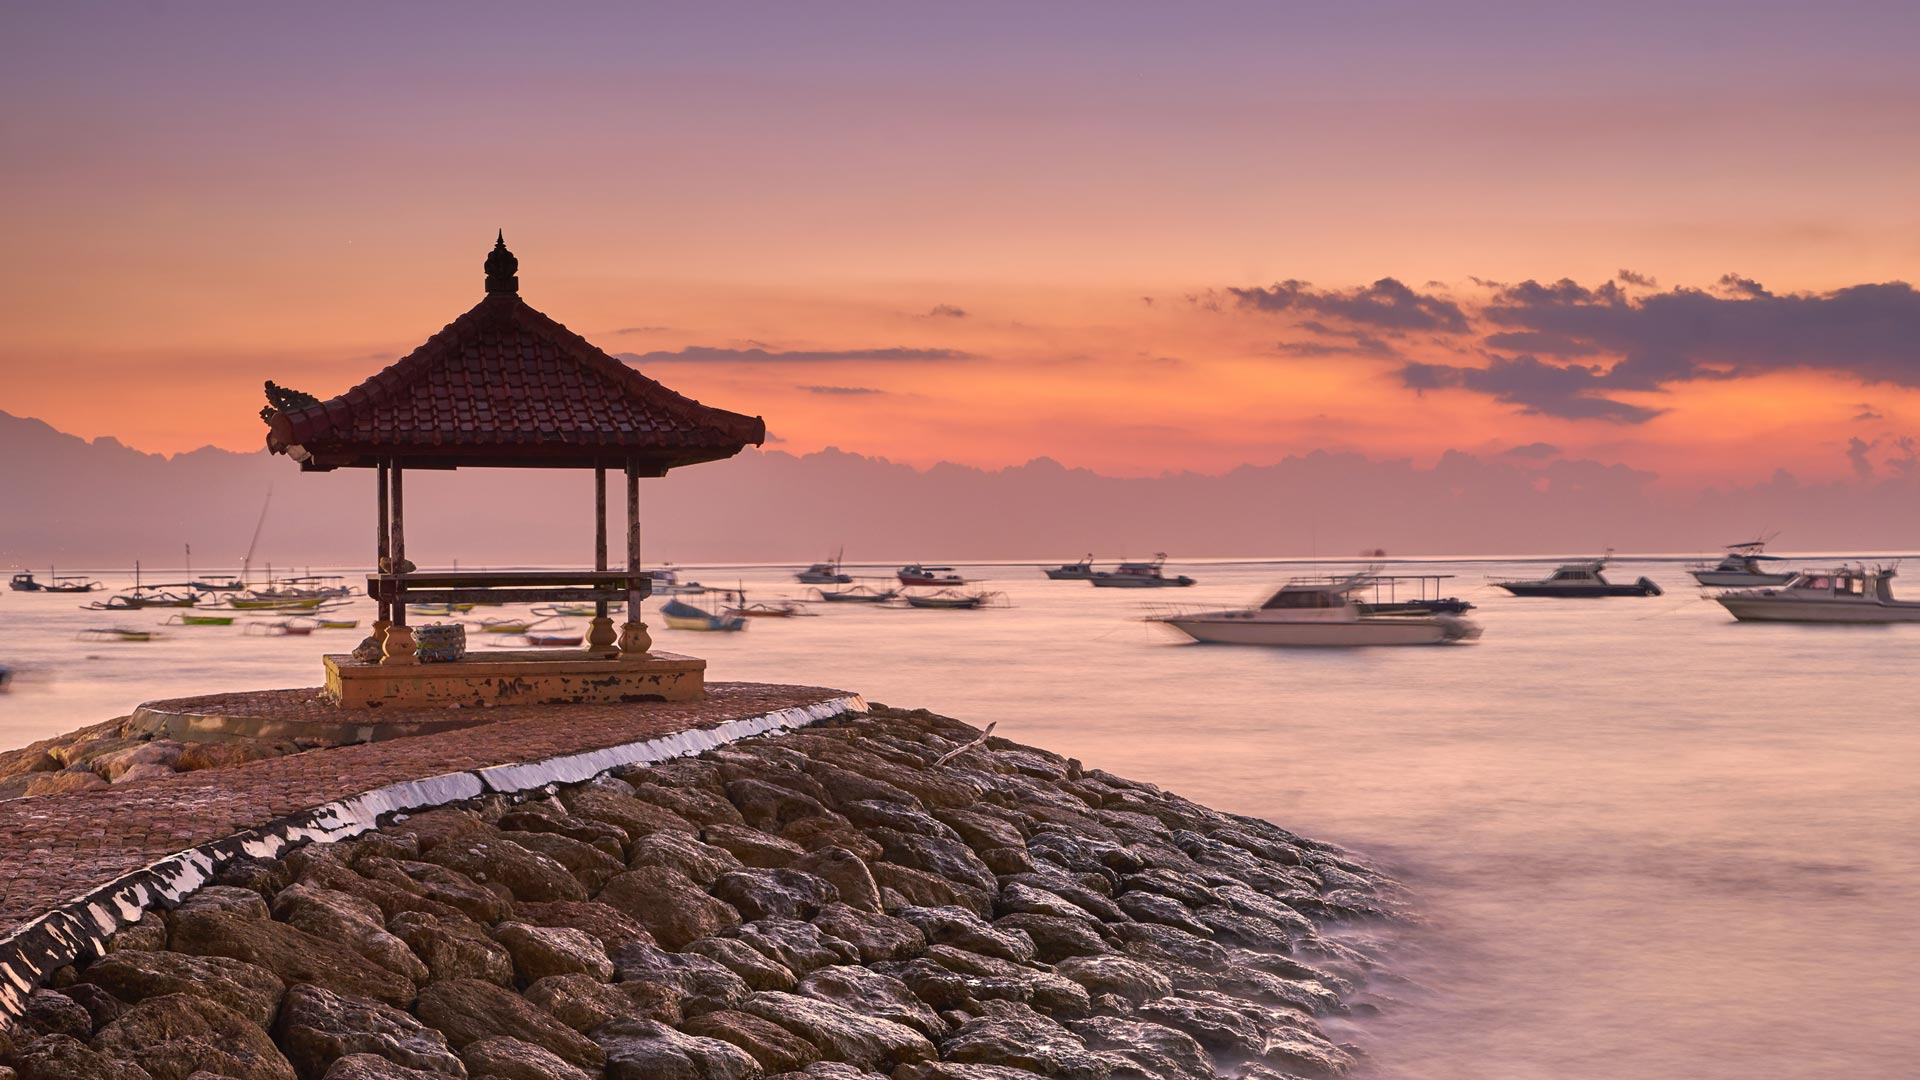 Sunsets in Bali - Ultimate Bali